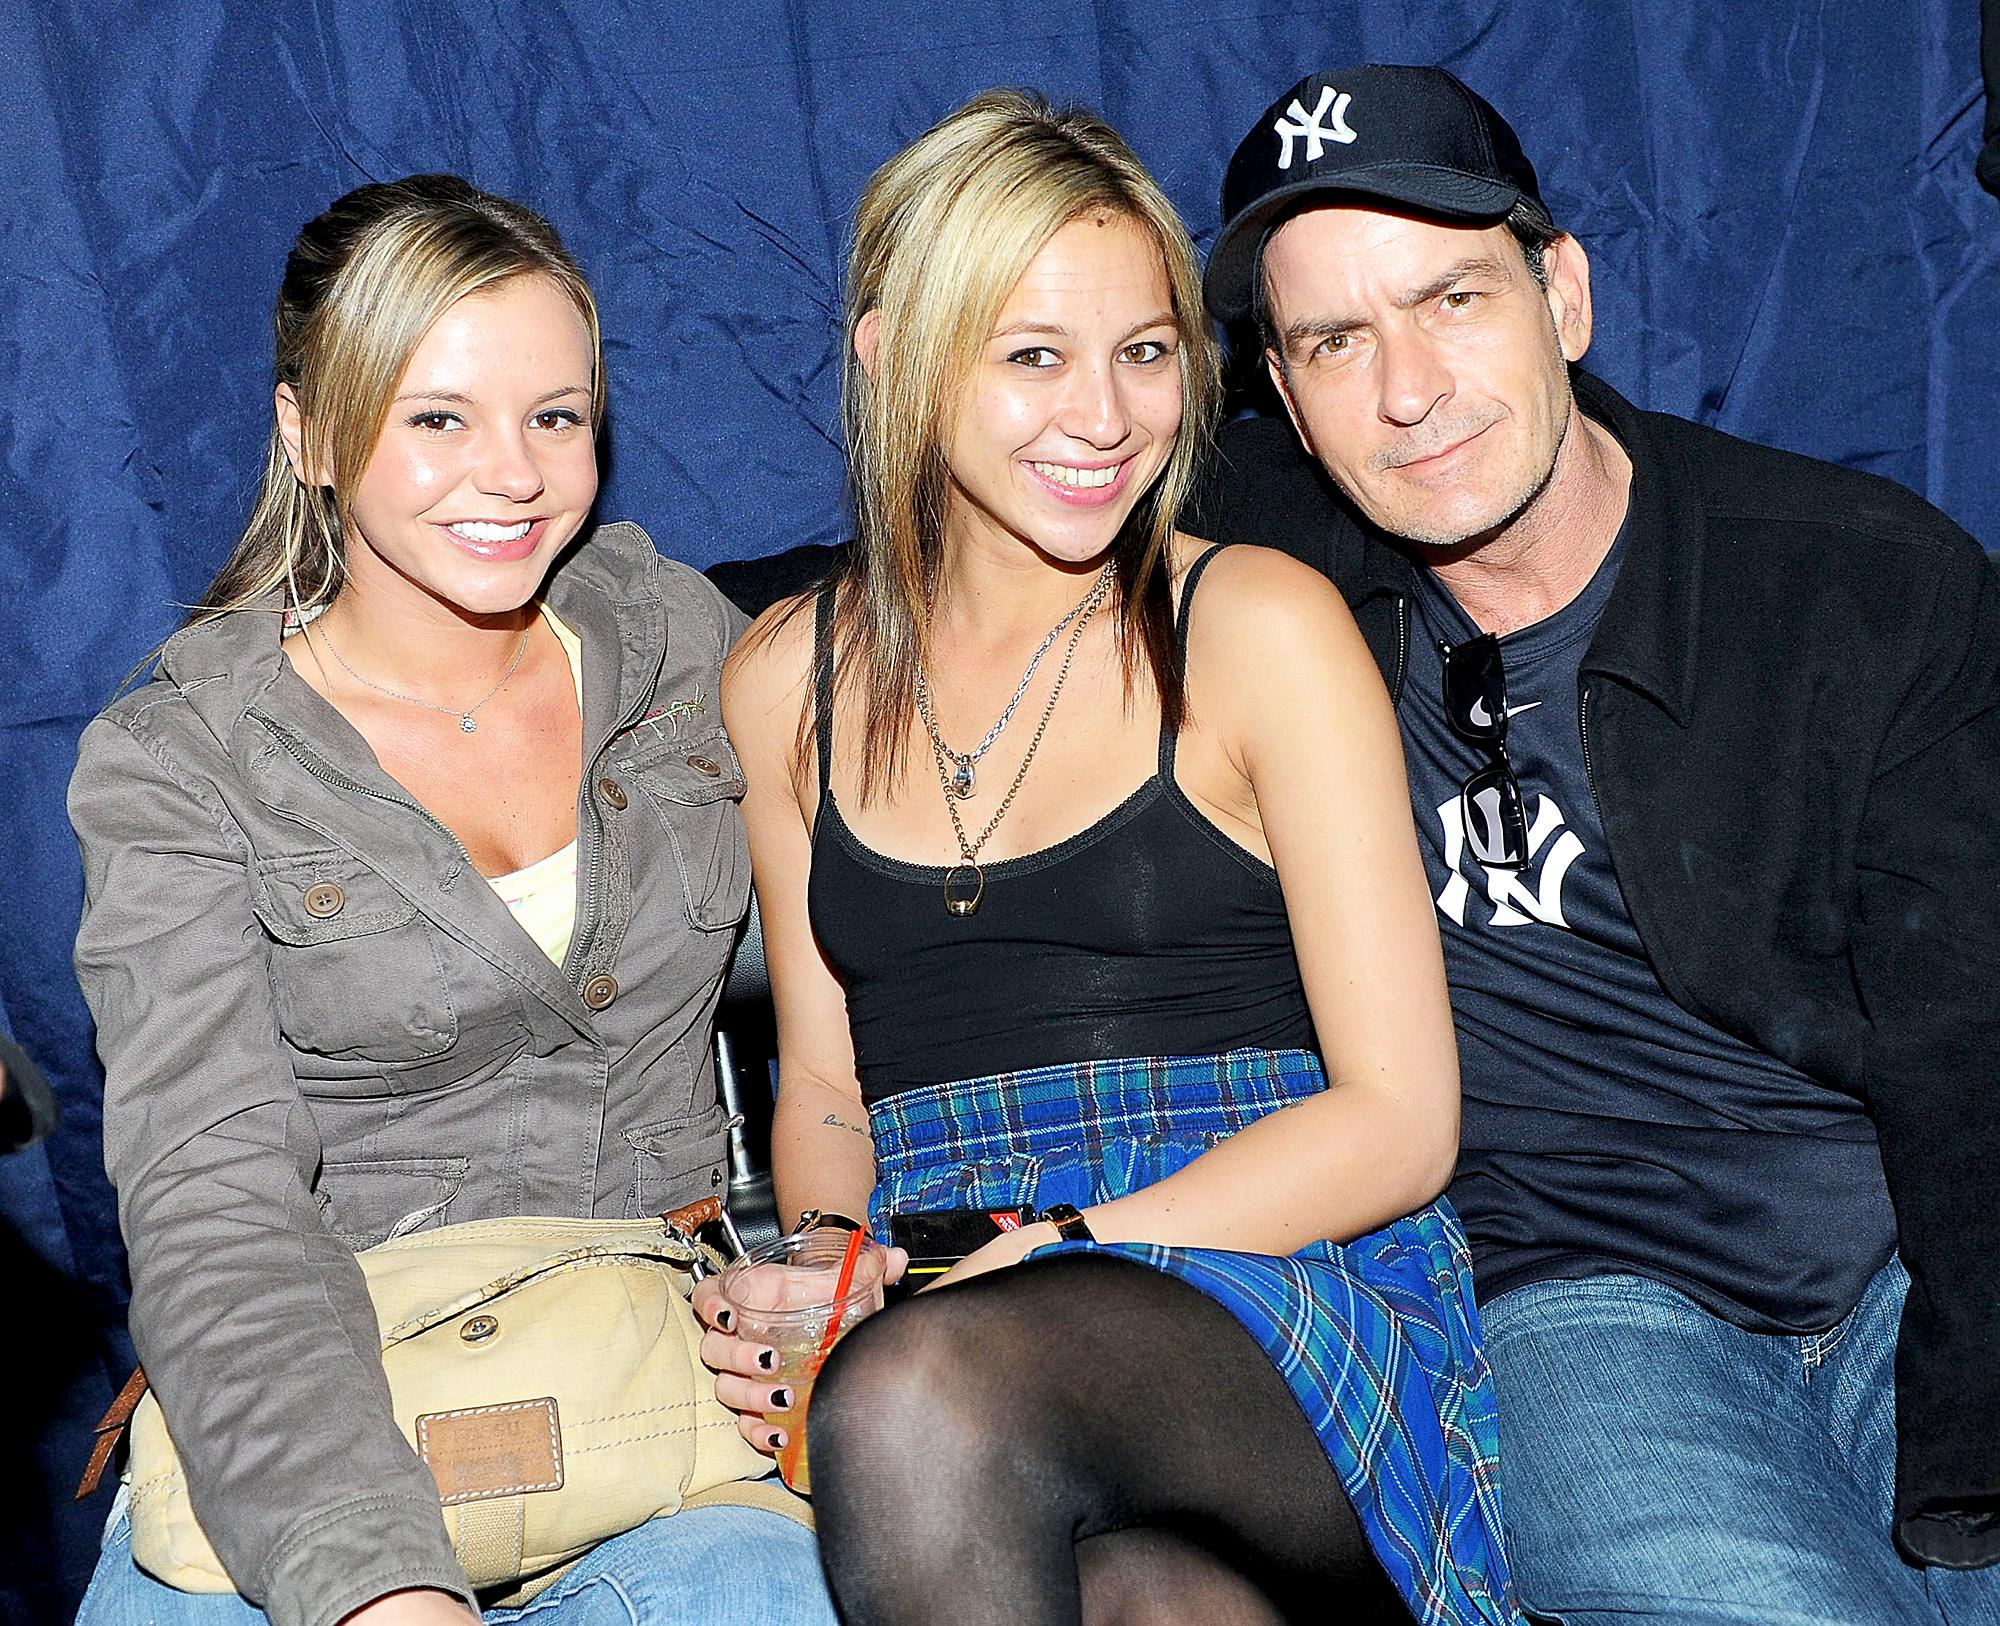 Outinpublic Staircase Porn bree olson, charlie sheen's ex, tells young girls: 'don't do